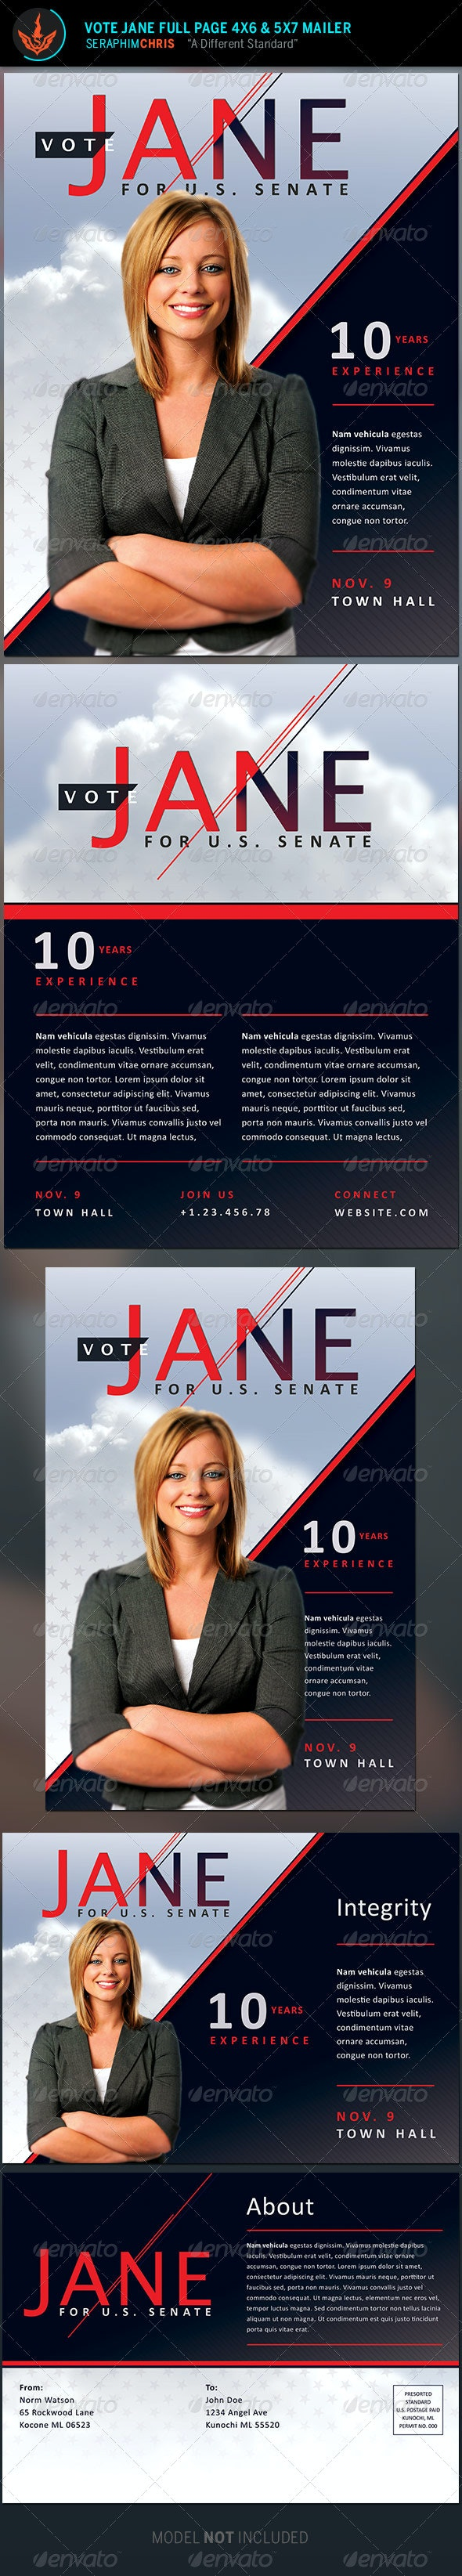 Jane Political Flyer and Mailer Template - Corporate Flyers